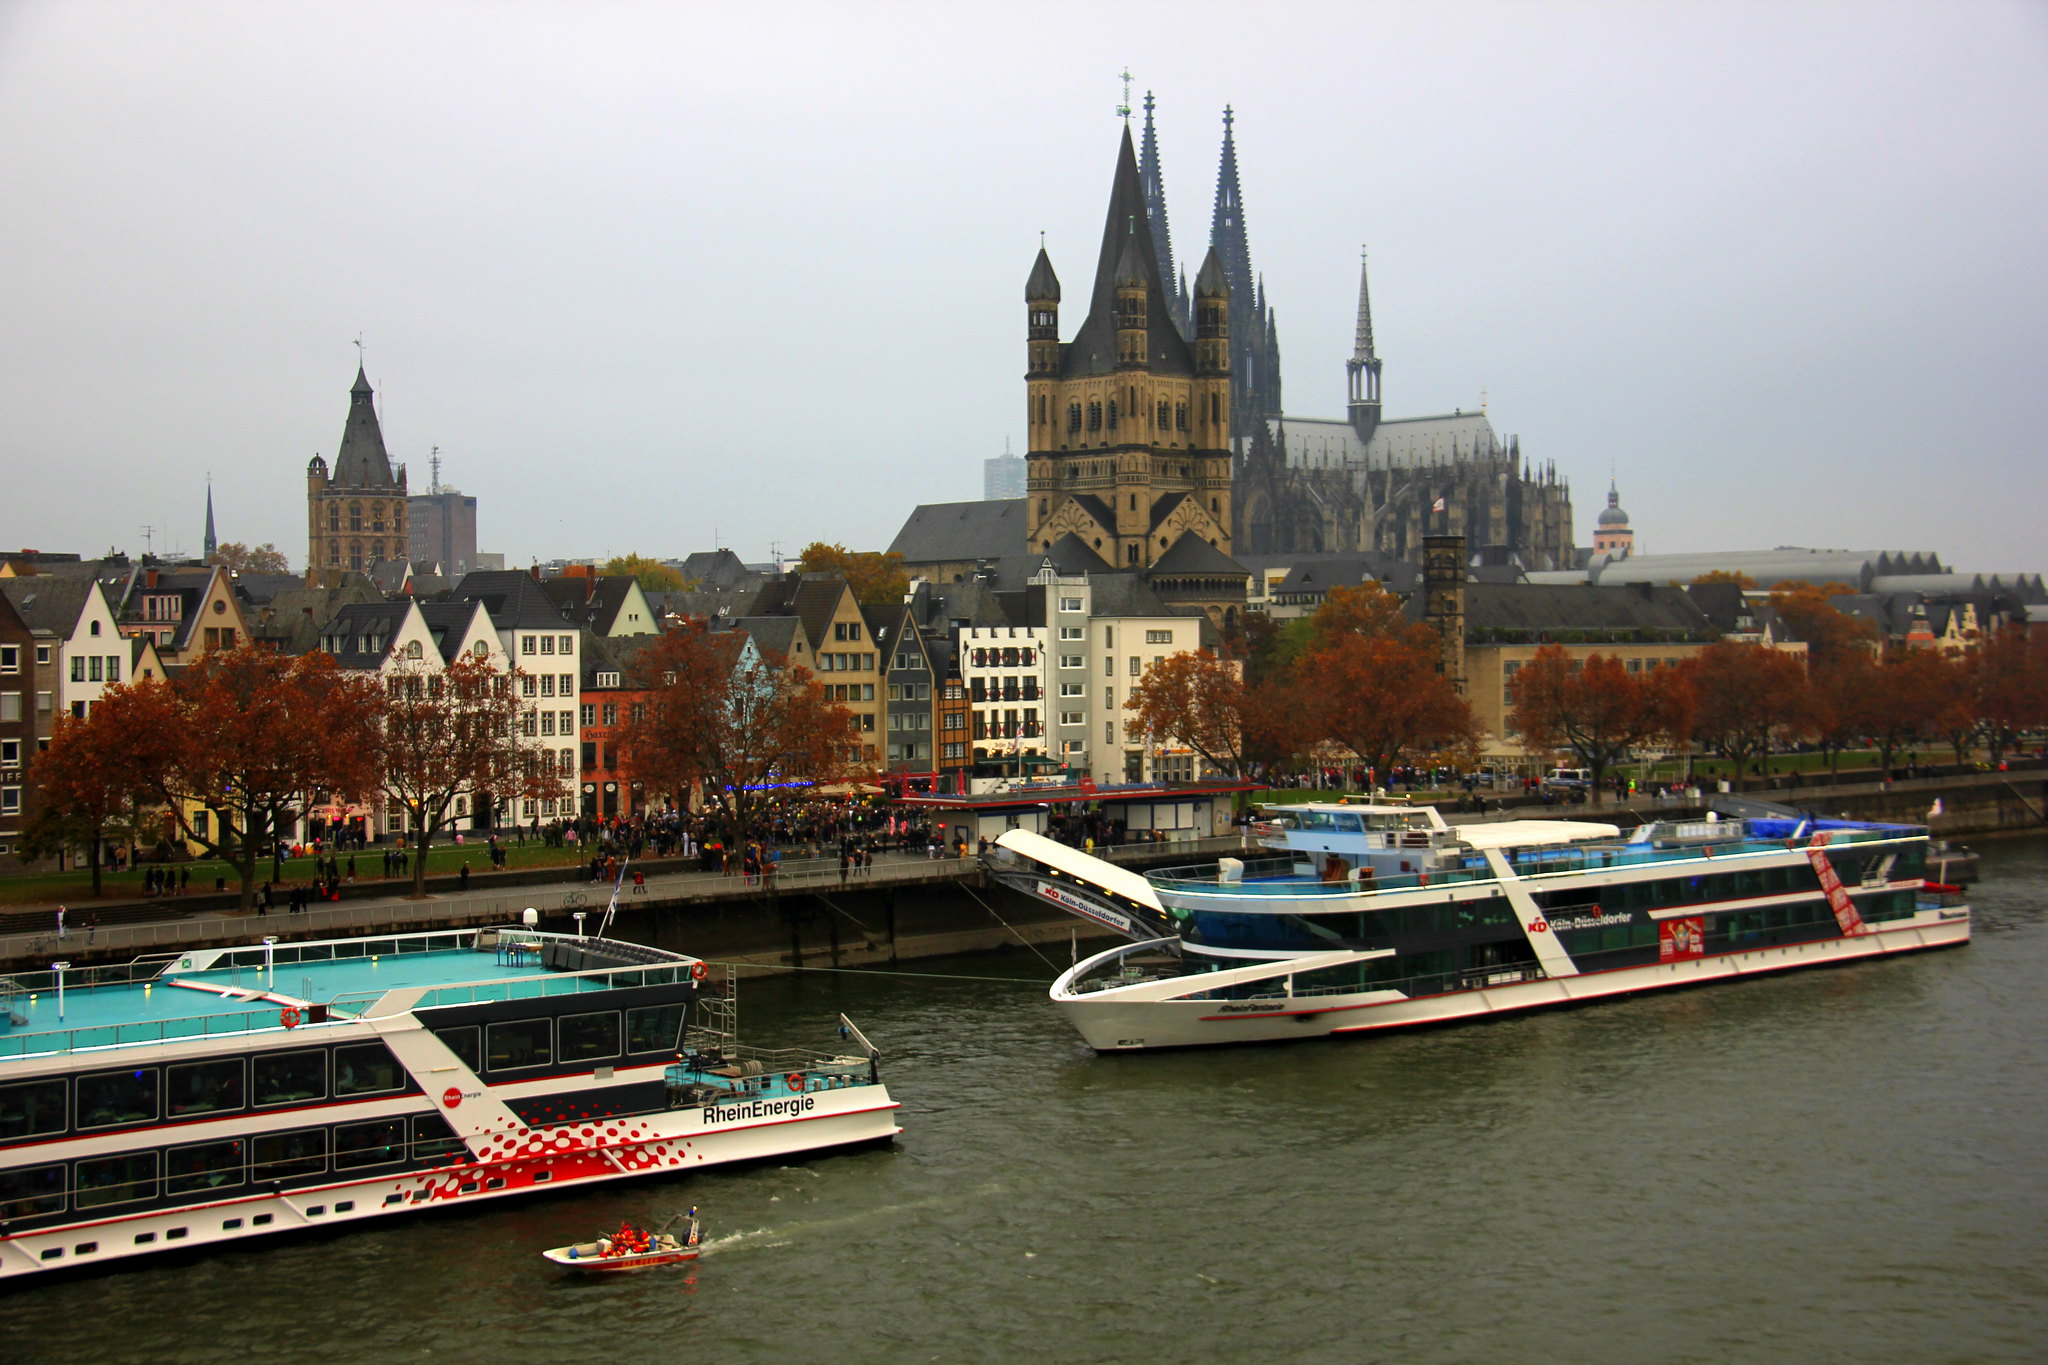 #Germany #Cologne #Travelbloggerindia #Travelblog #Germanytravelblog #Colognetourism #Colognekarnaval